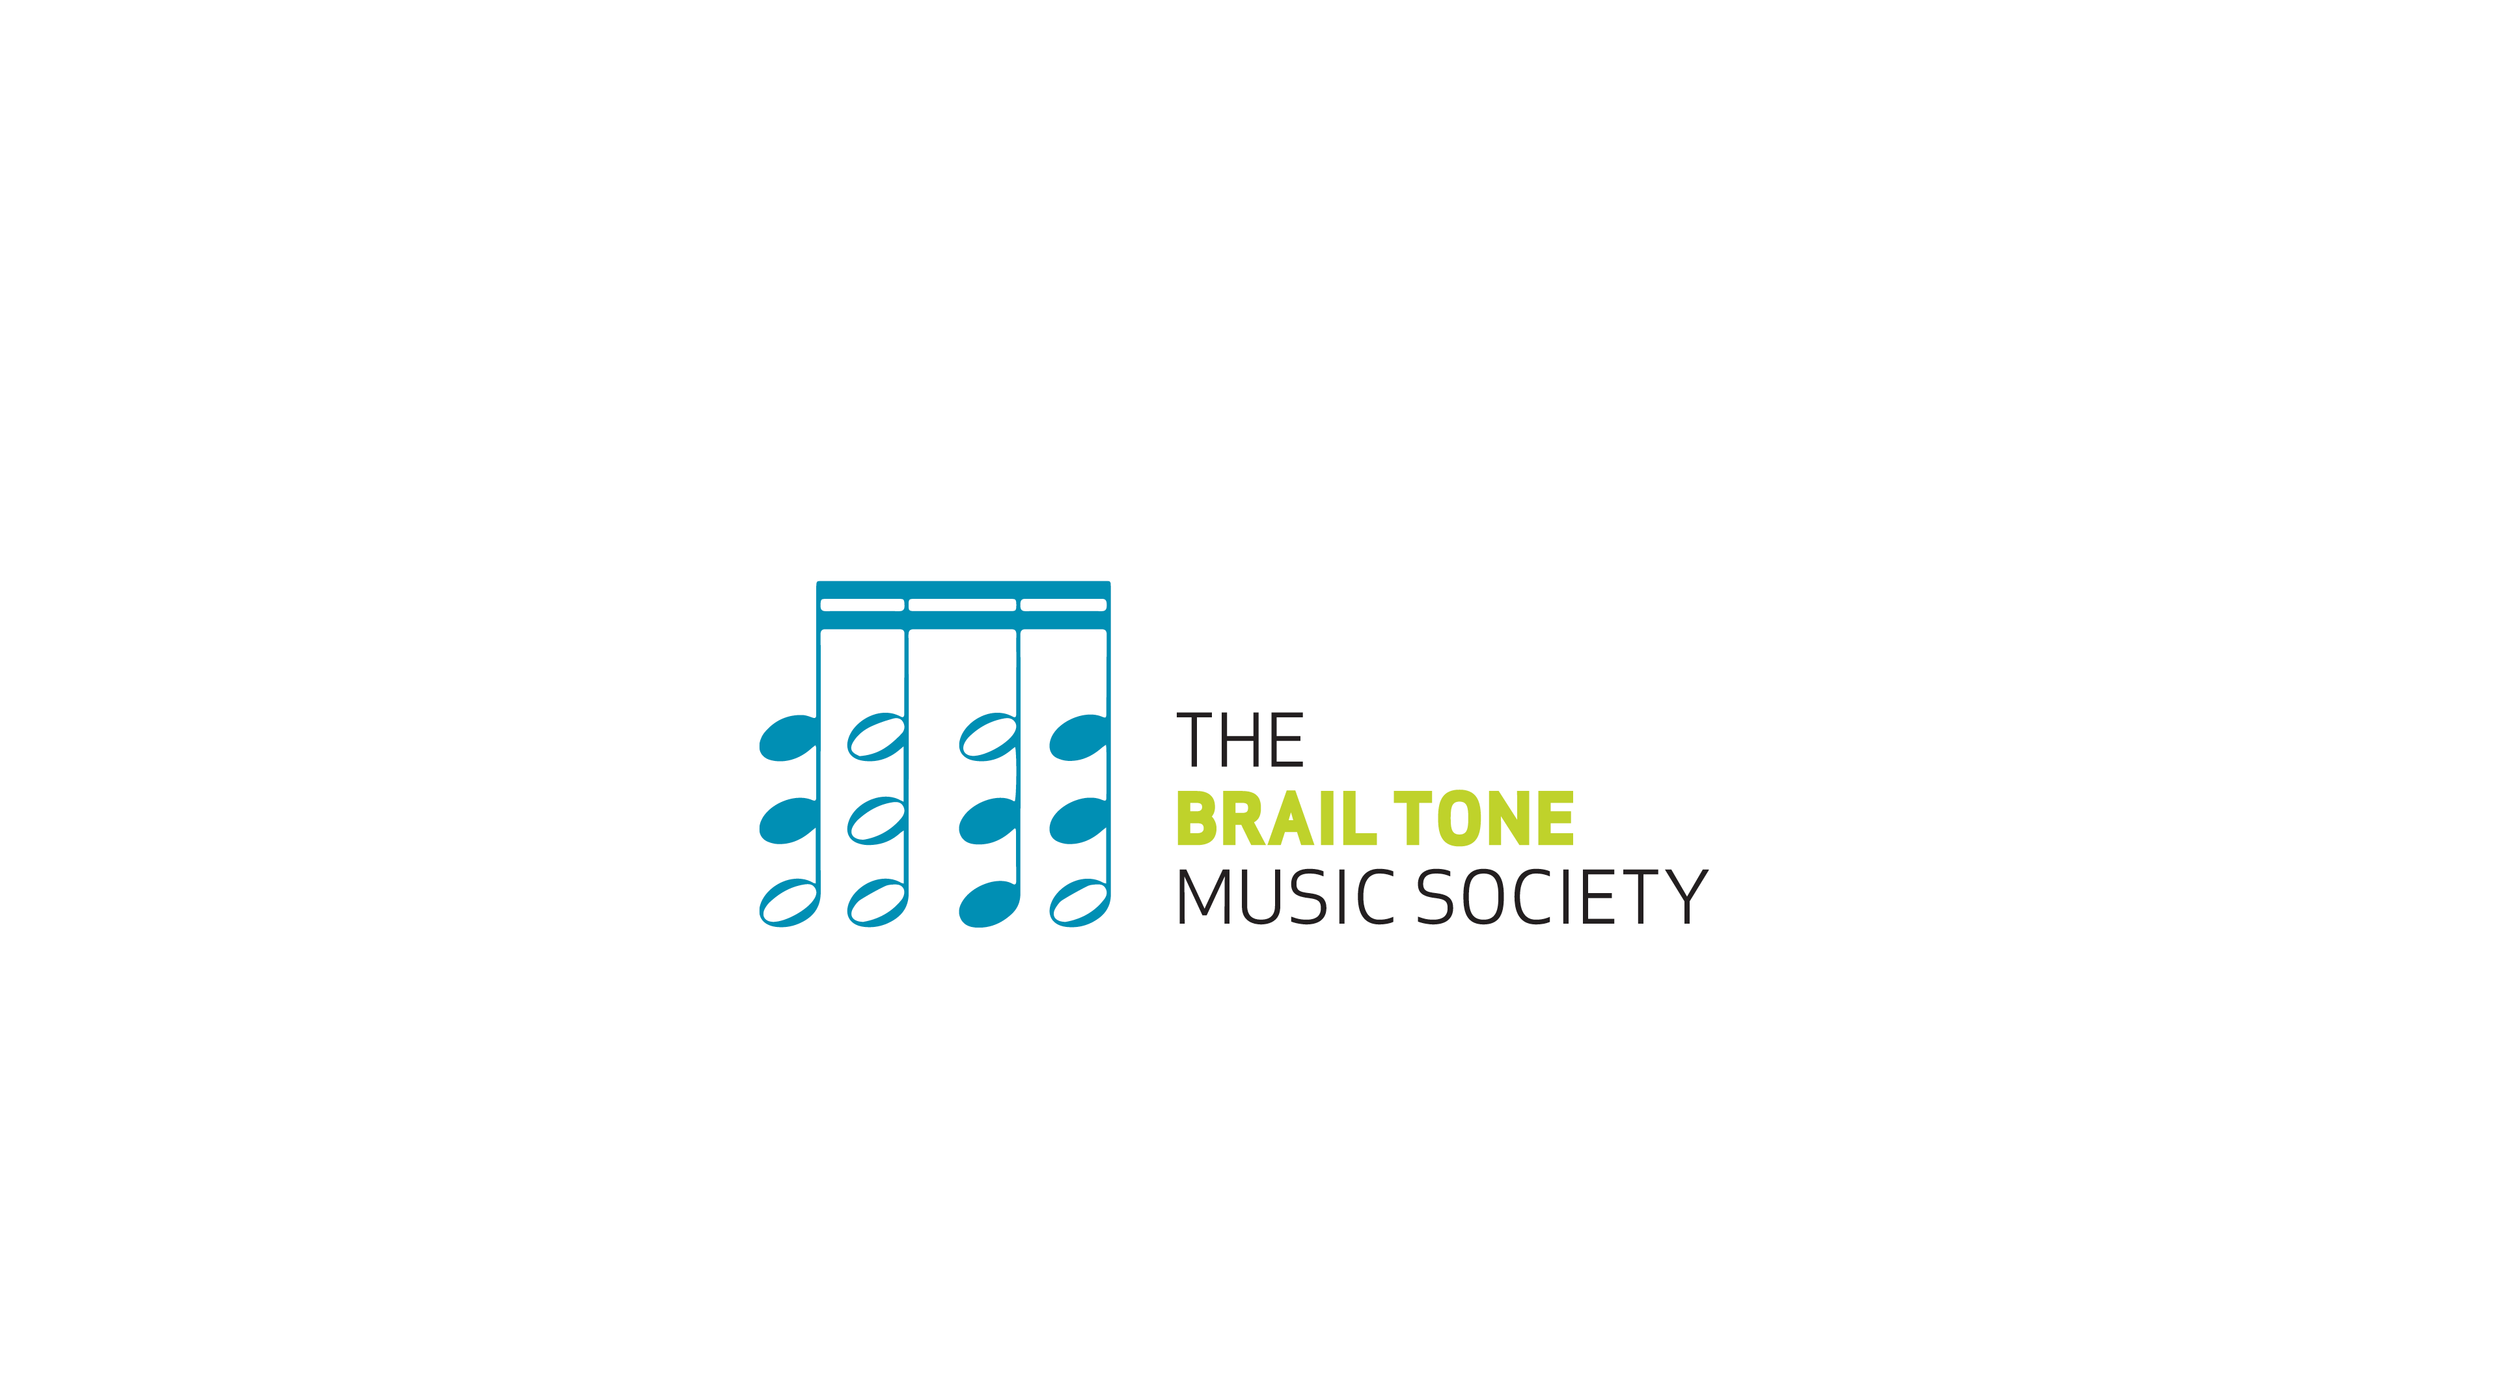 THE BRAILLE TONE MUSIC SOCIETY